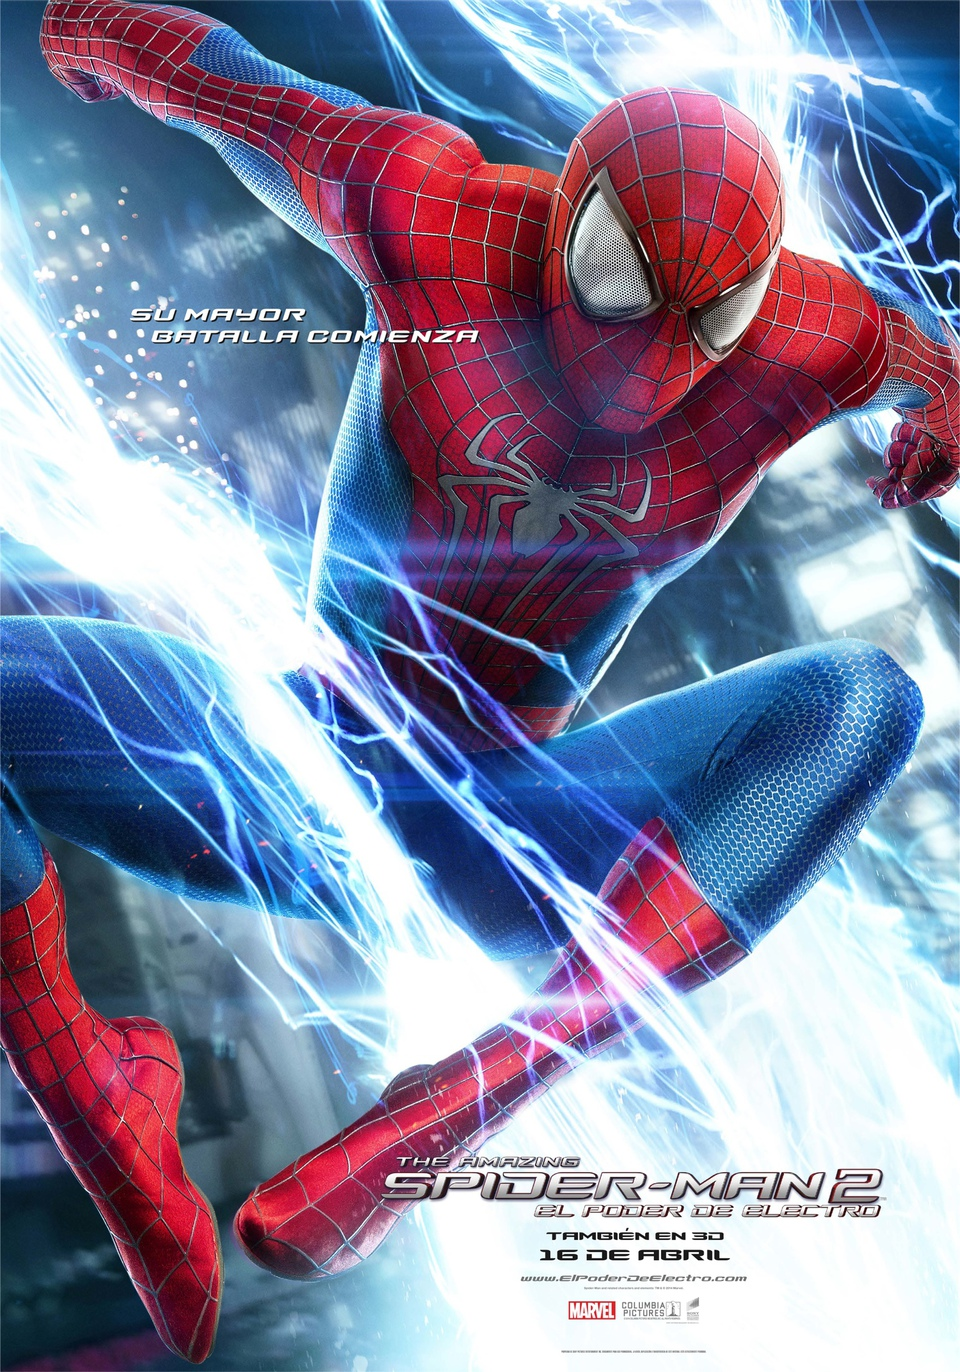 THE AMAZING SPIDER-MAN 2.EL PODER DE ELECTRO DIGT